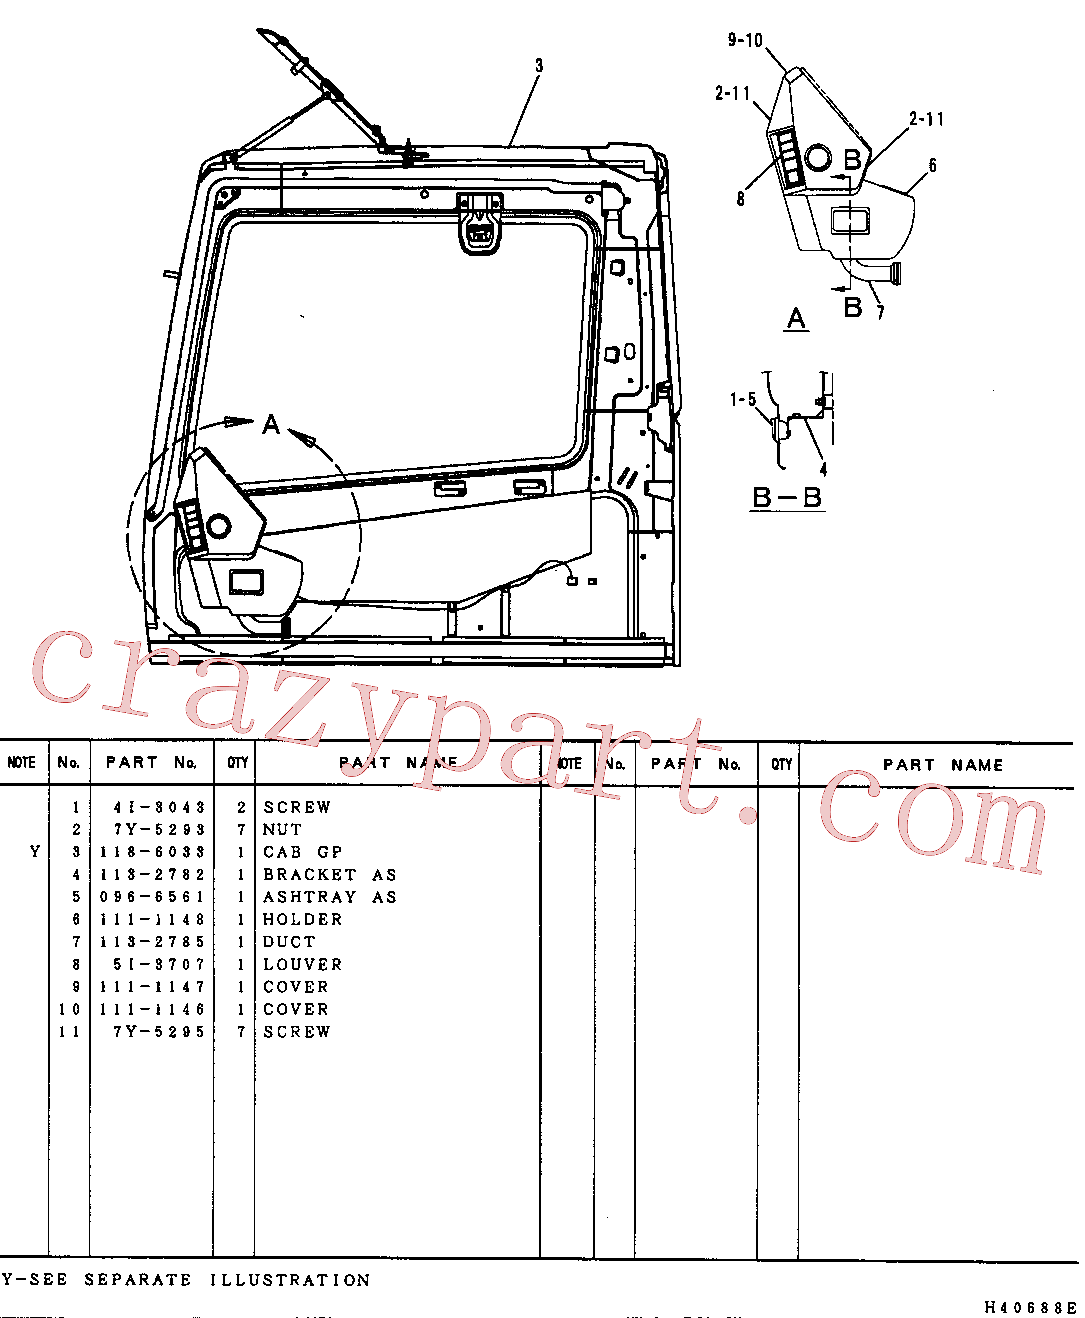 CAT 9X-2480 for 730C2 Articulated Truck(ADT) operator station 102-8358 Assembly